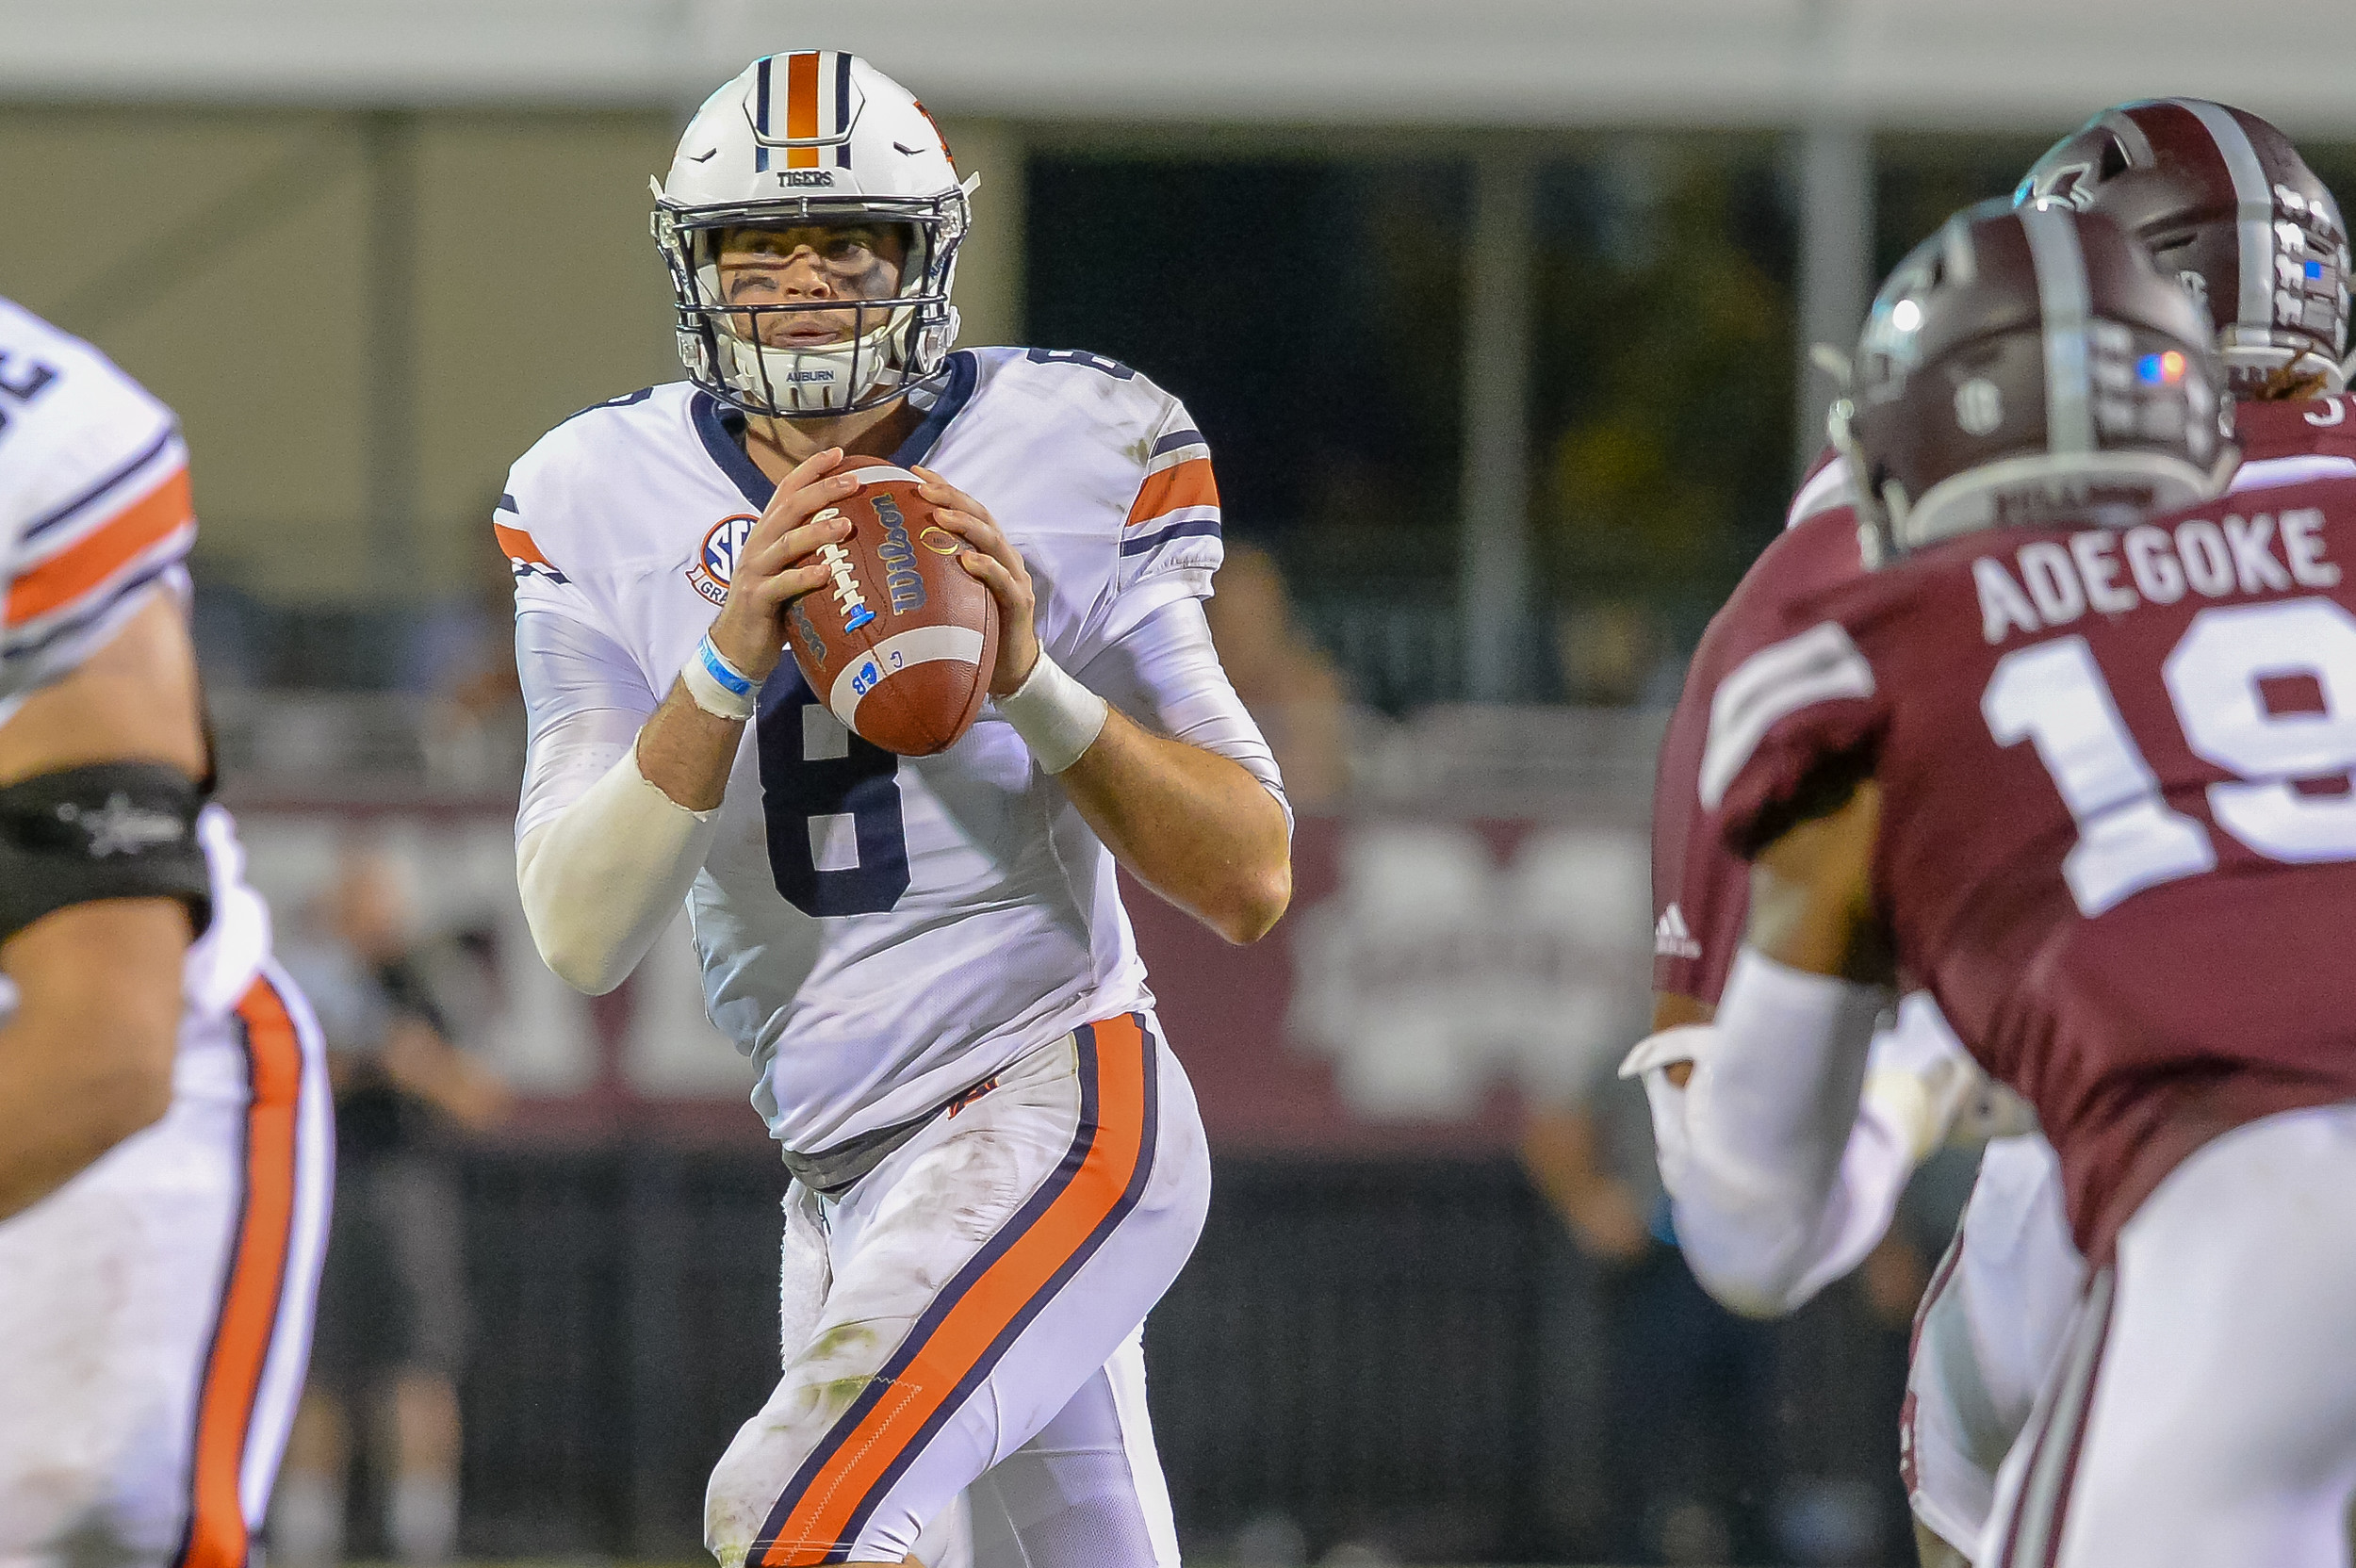 Auburn Tigers quarterback Jarrett Stidham (8) looks to throw during the second half of Saturday's game, at Davis Wade Stadium in Starkville, MS. Daily Mountain Eagle -  Jeff Johnsey